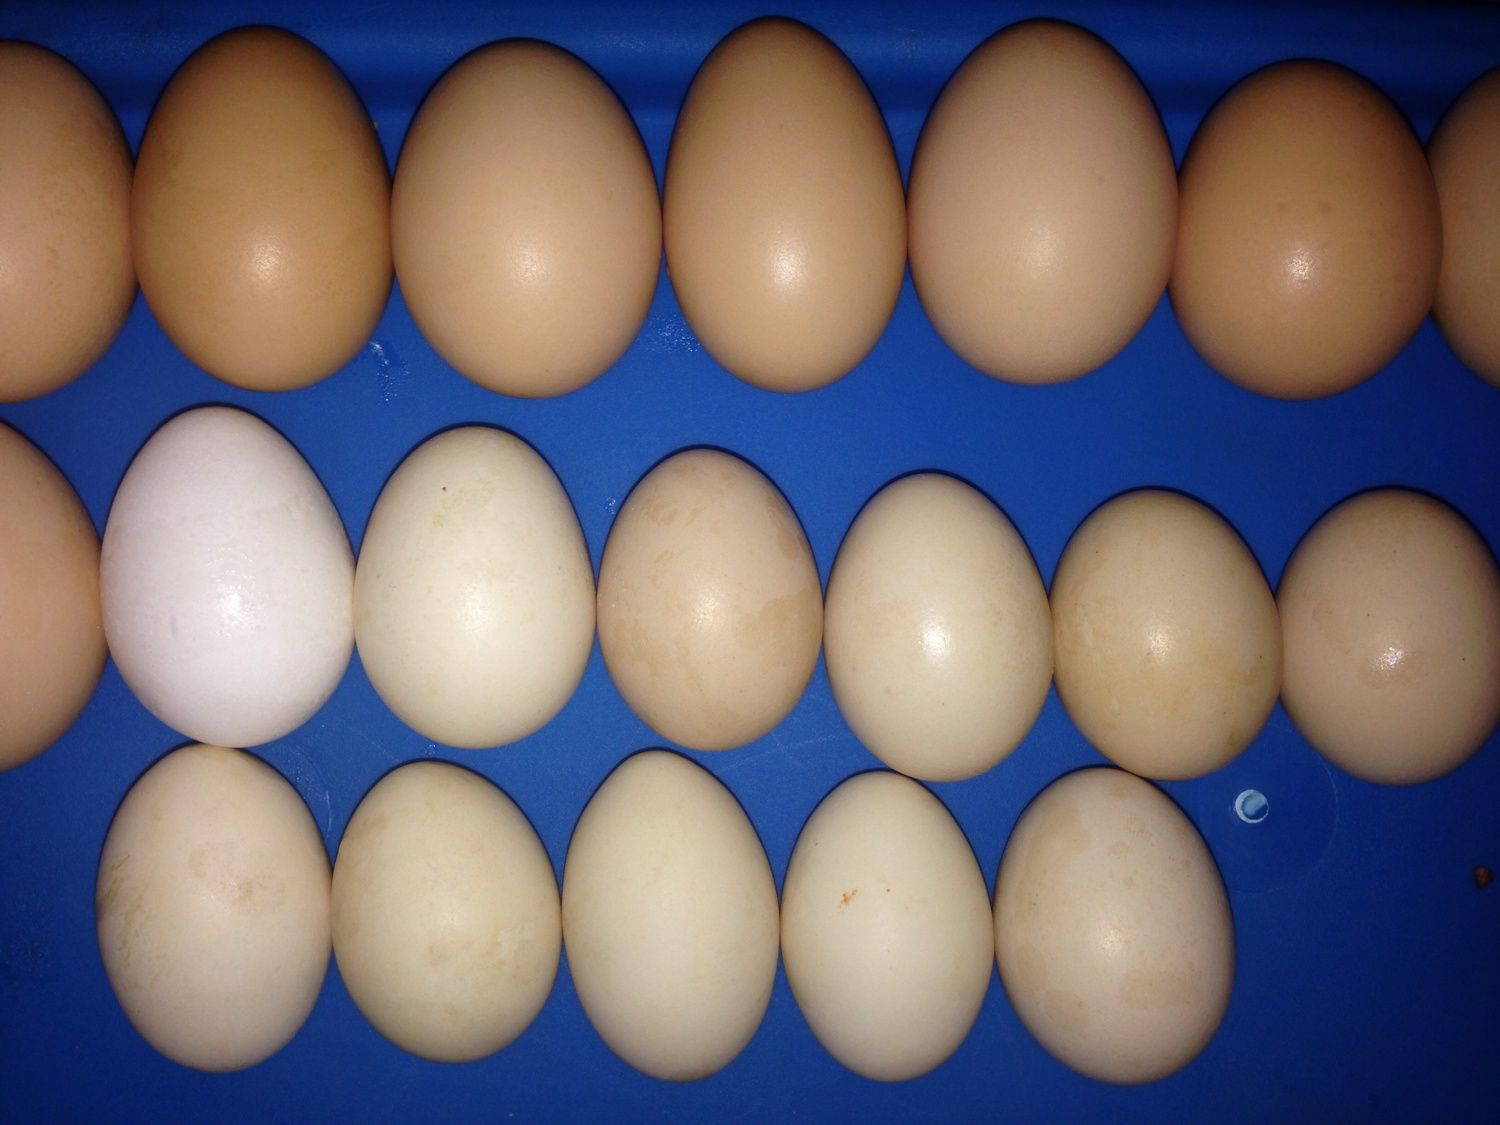 any guinea eggs in this picture backyard chickens